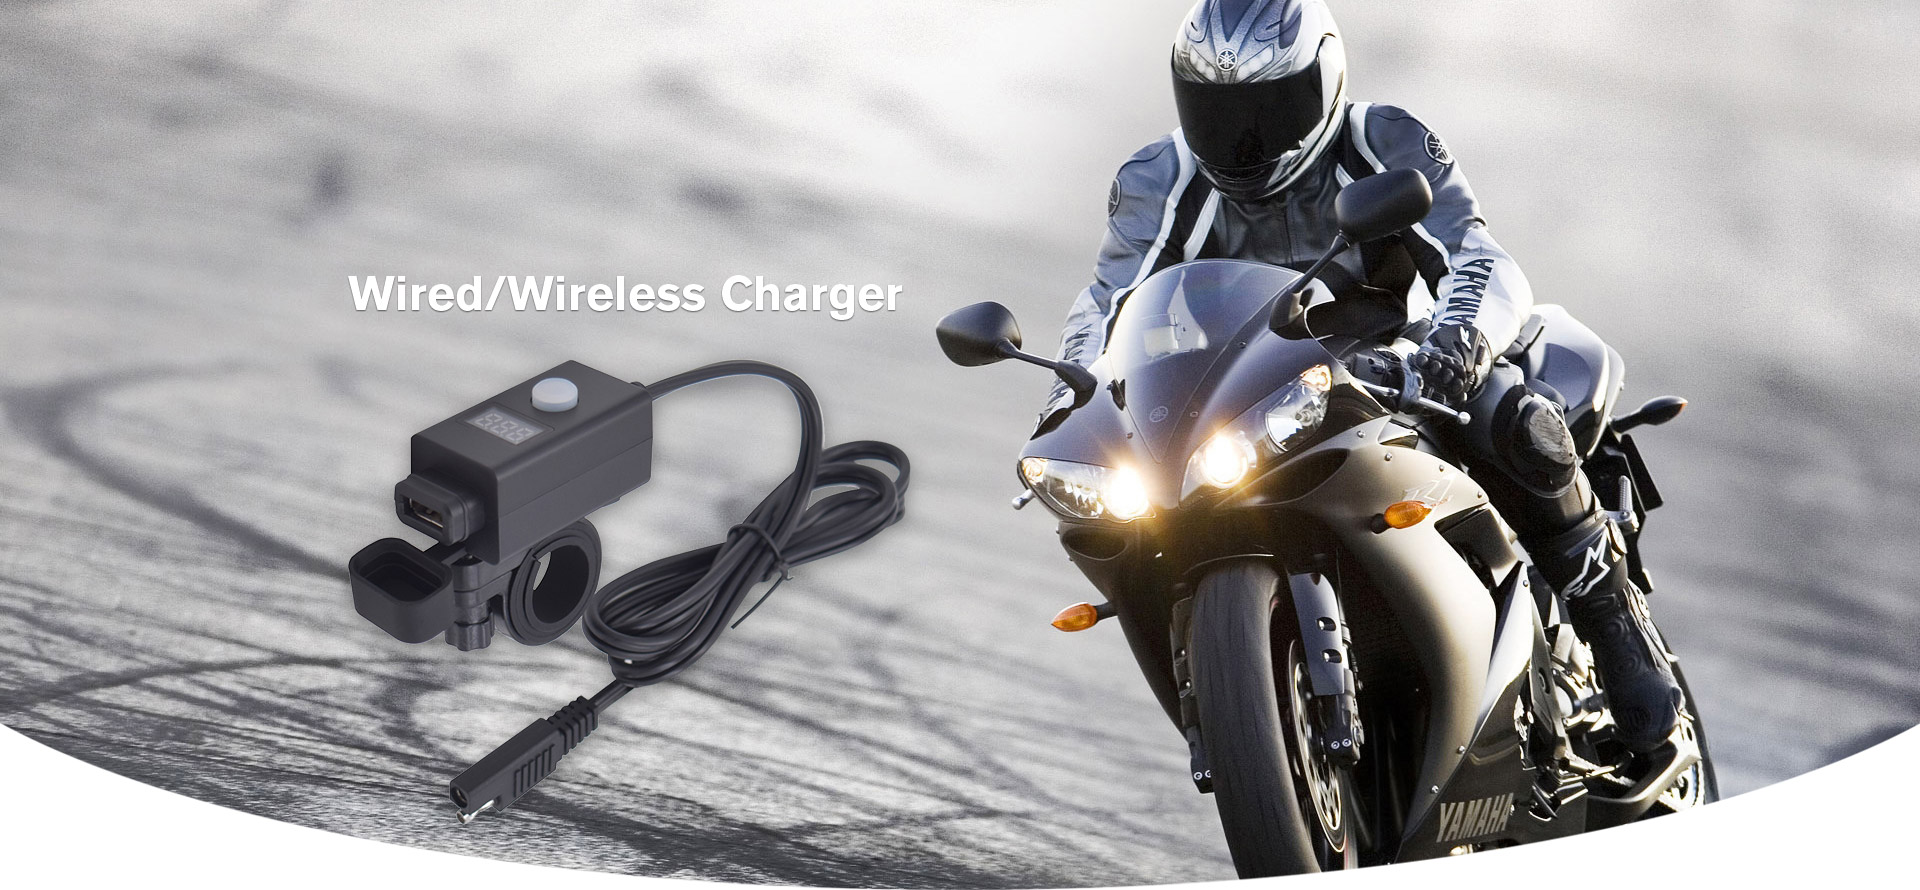 Wired/ Wireless Charger